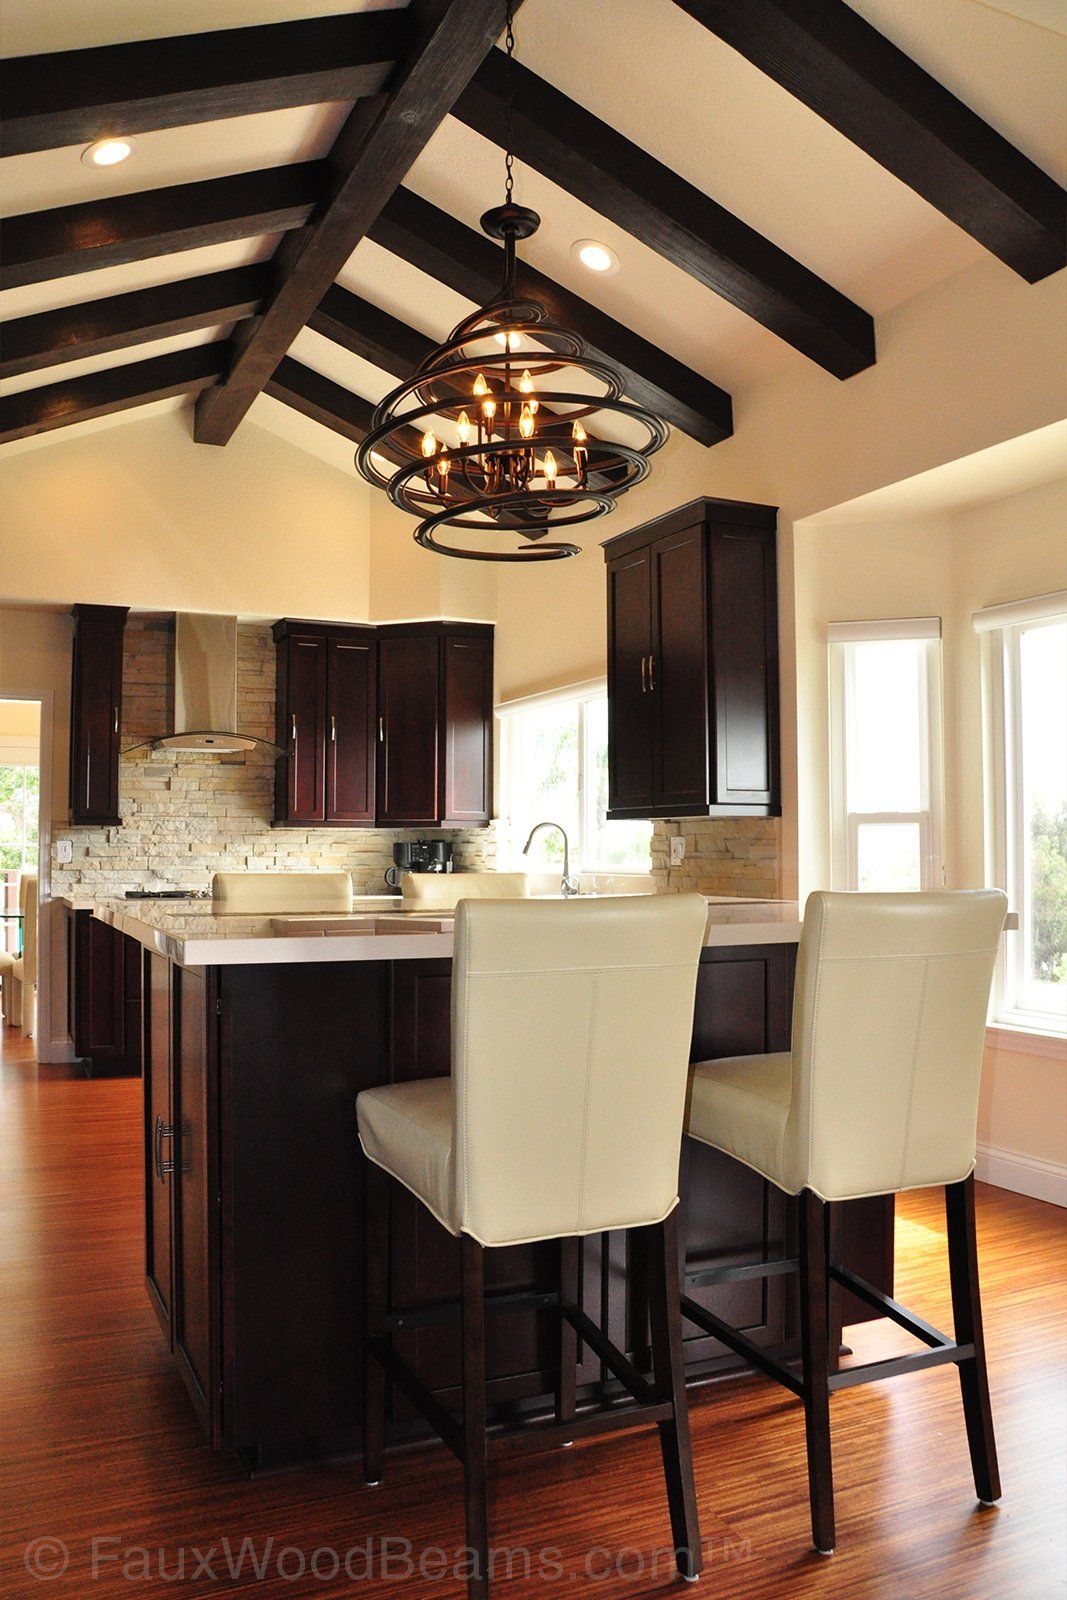 Home Interior Trends 2019 Faux Wood Is On The Rise Interior Design Kitchen Small Vaulted Living Rooms Painted Ceiling Beams